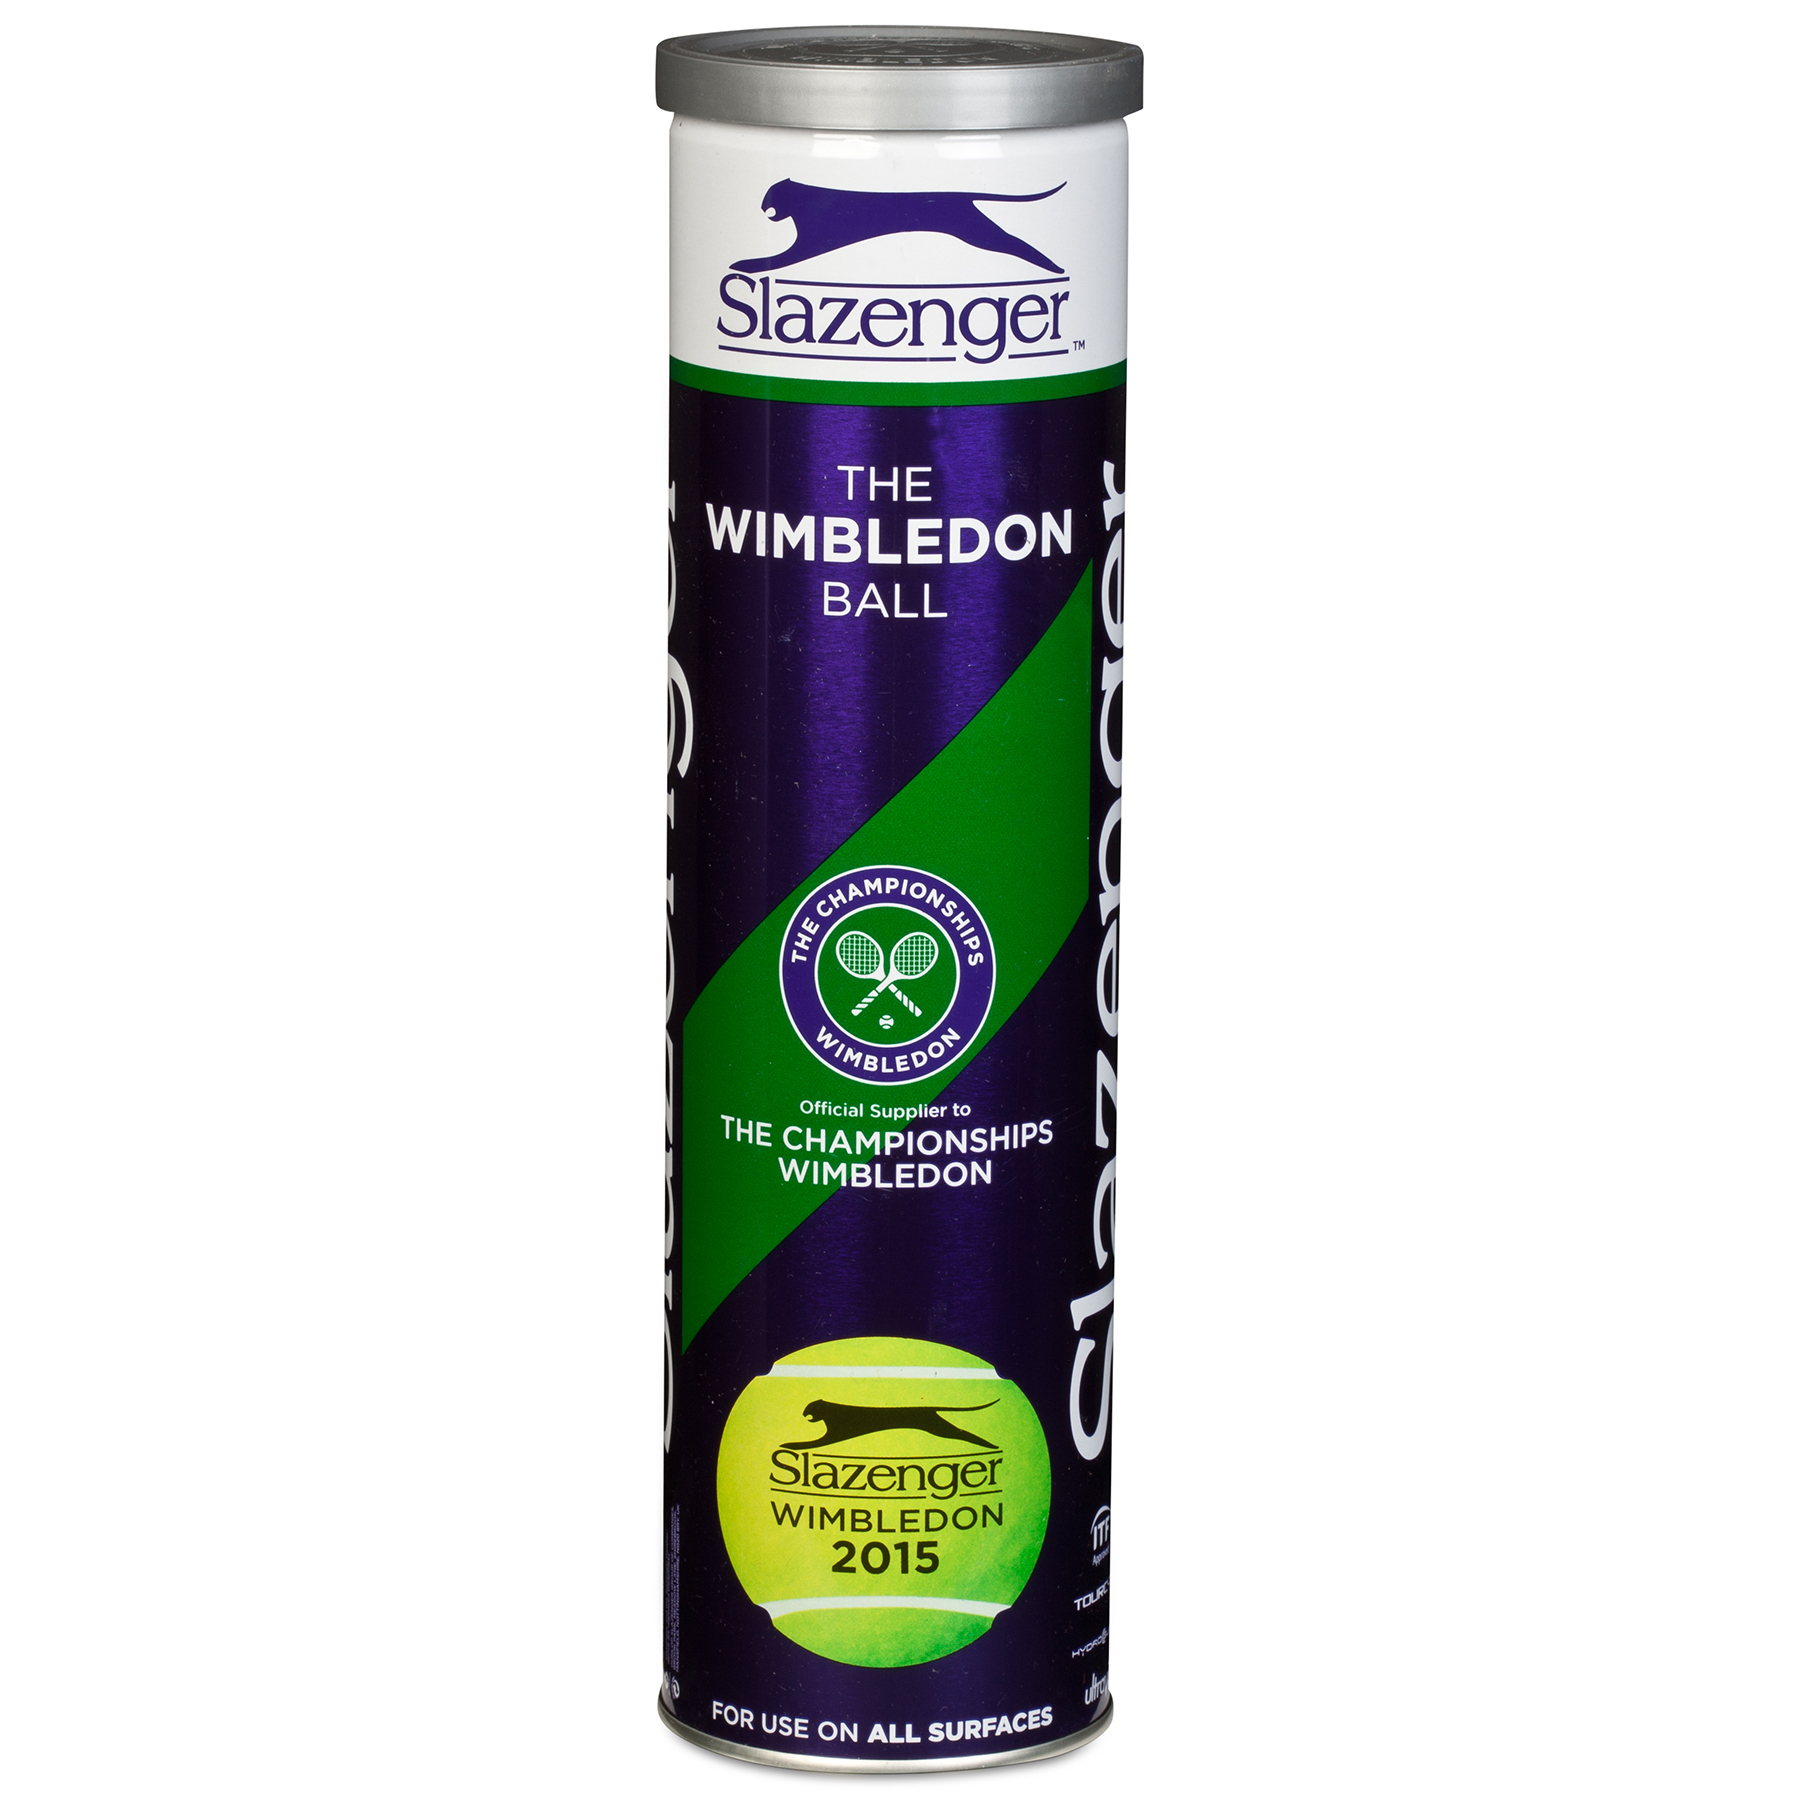 Wimbledon Slazenger 2015 Tennis Ball - 4 Pack